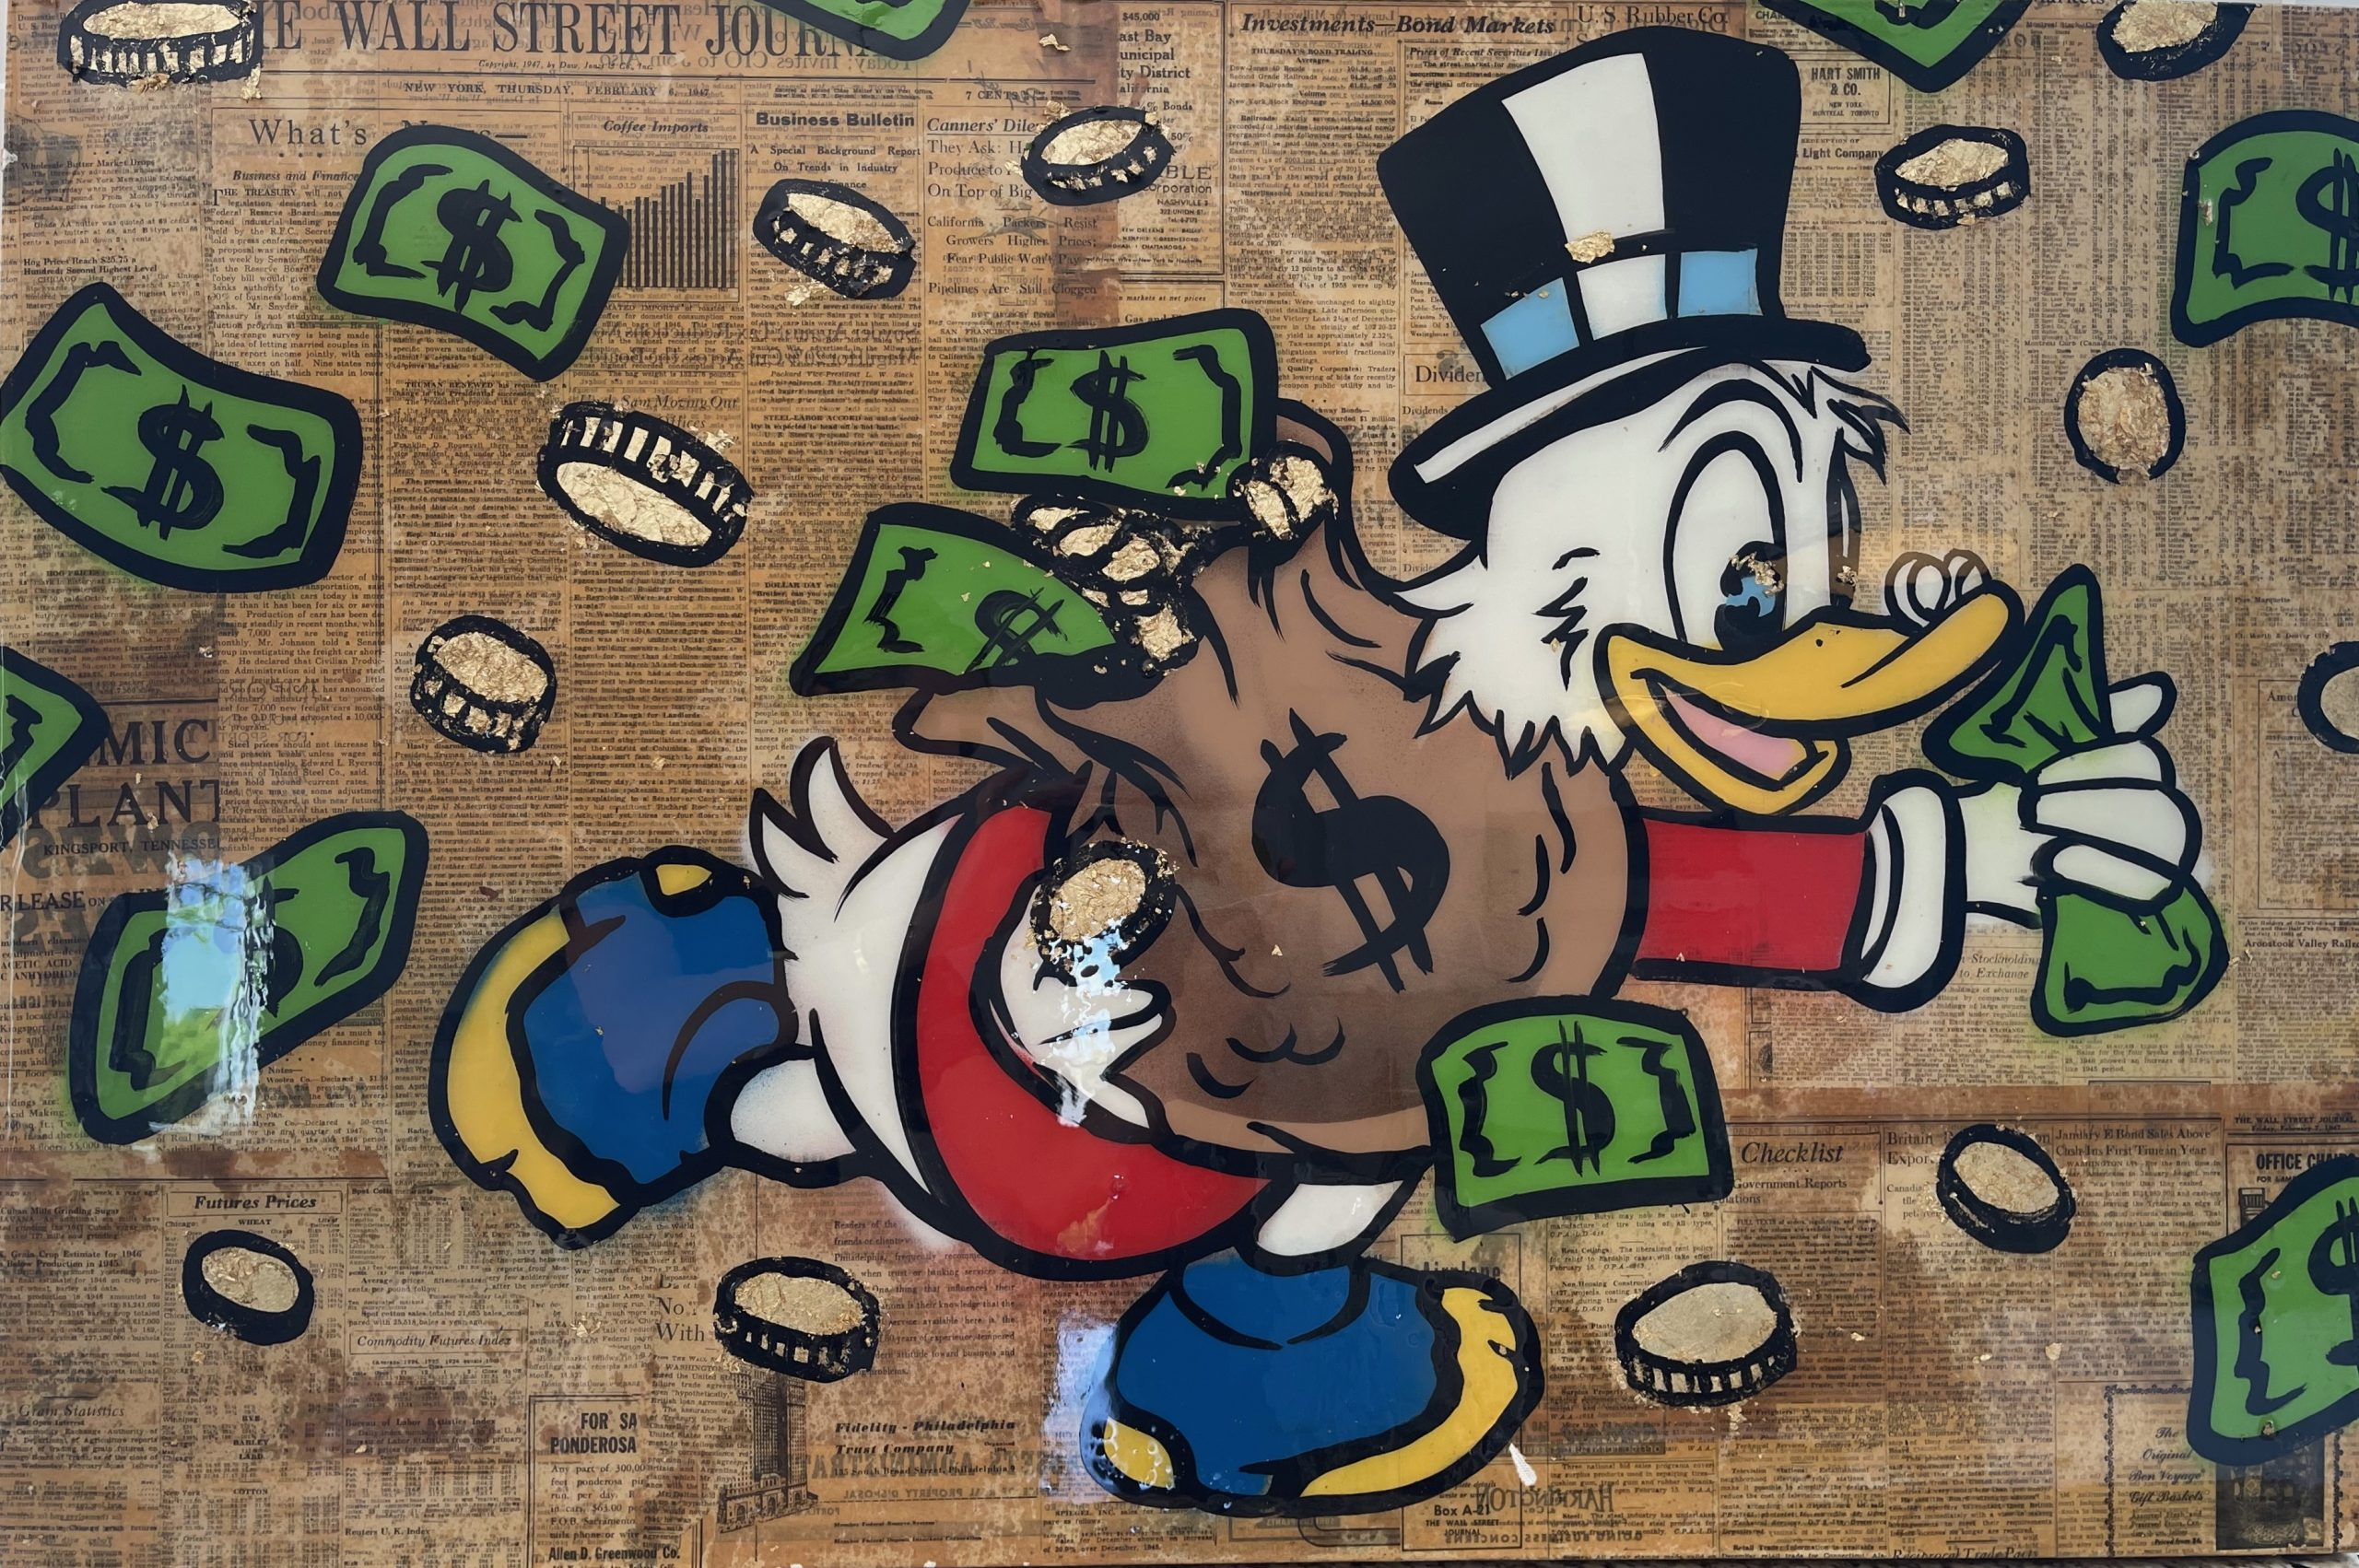 Scrooge Moneybags by Alec Monopoly